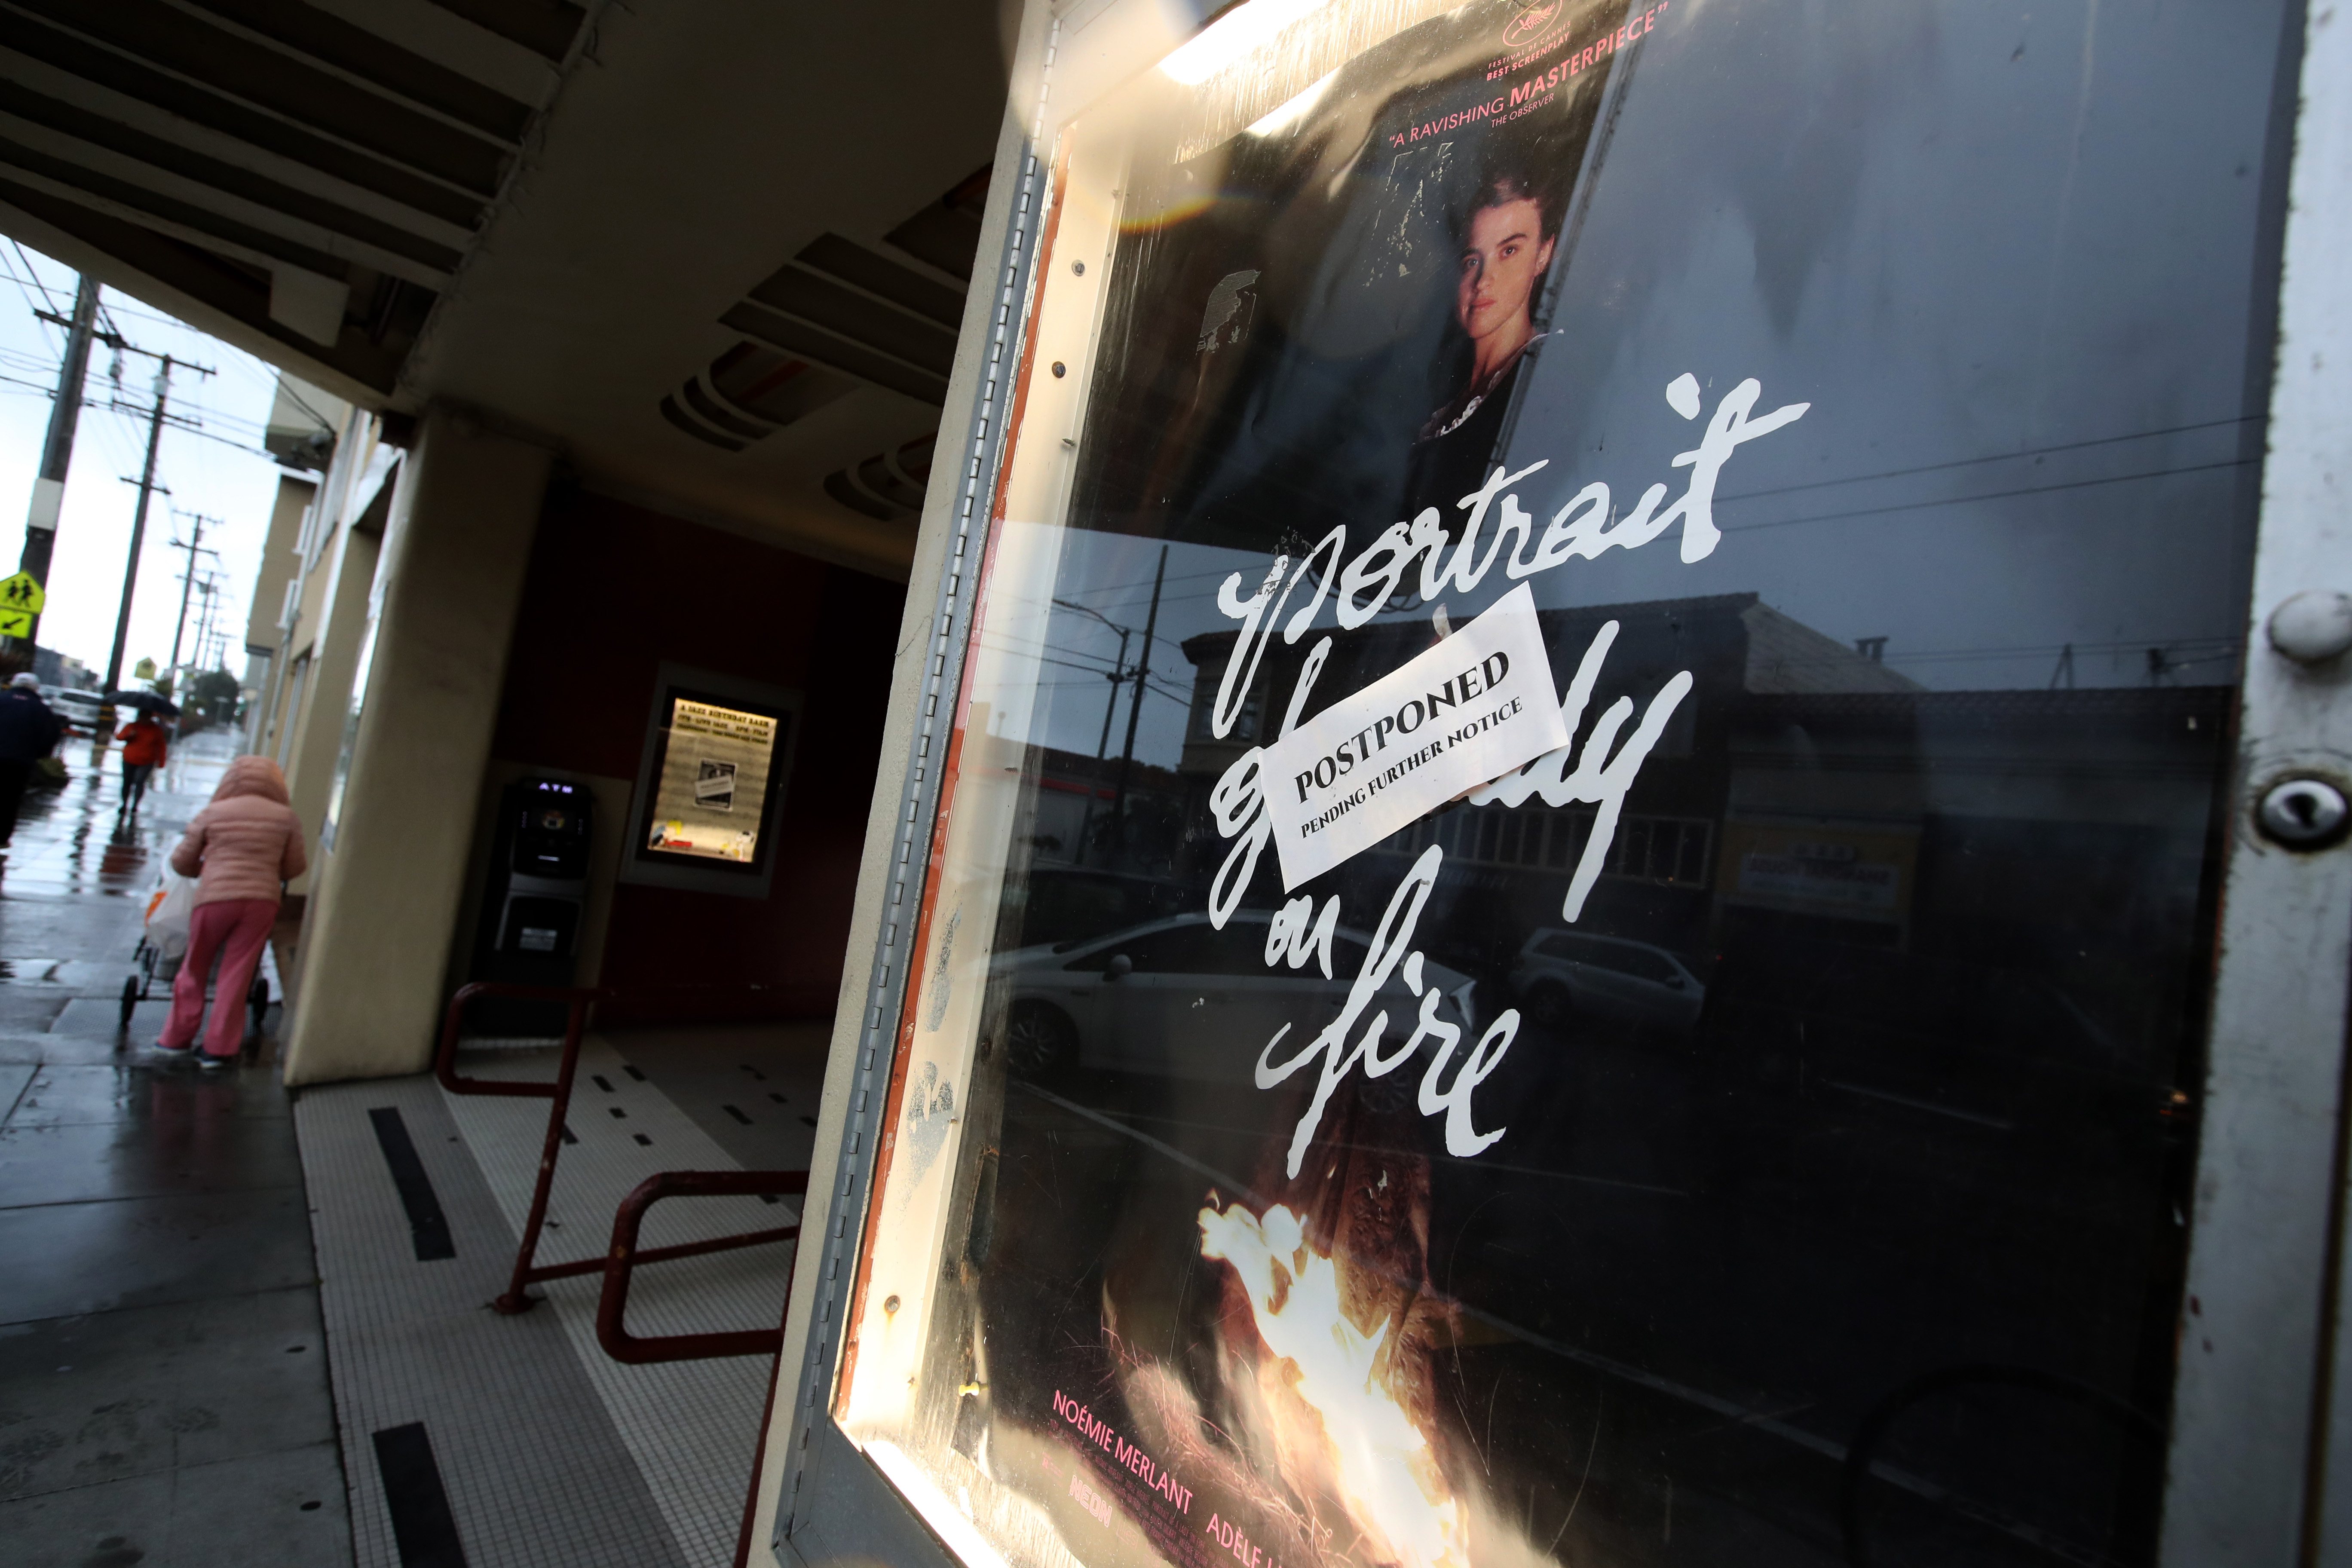 A postponed sign is displayed on a movie poster at Balboa Theater.